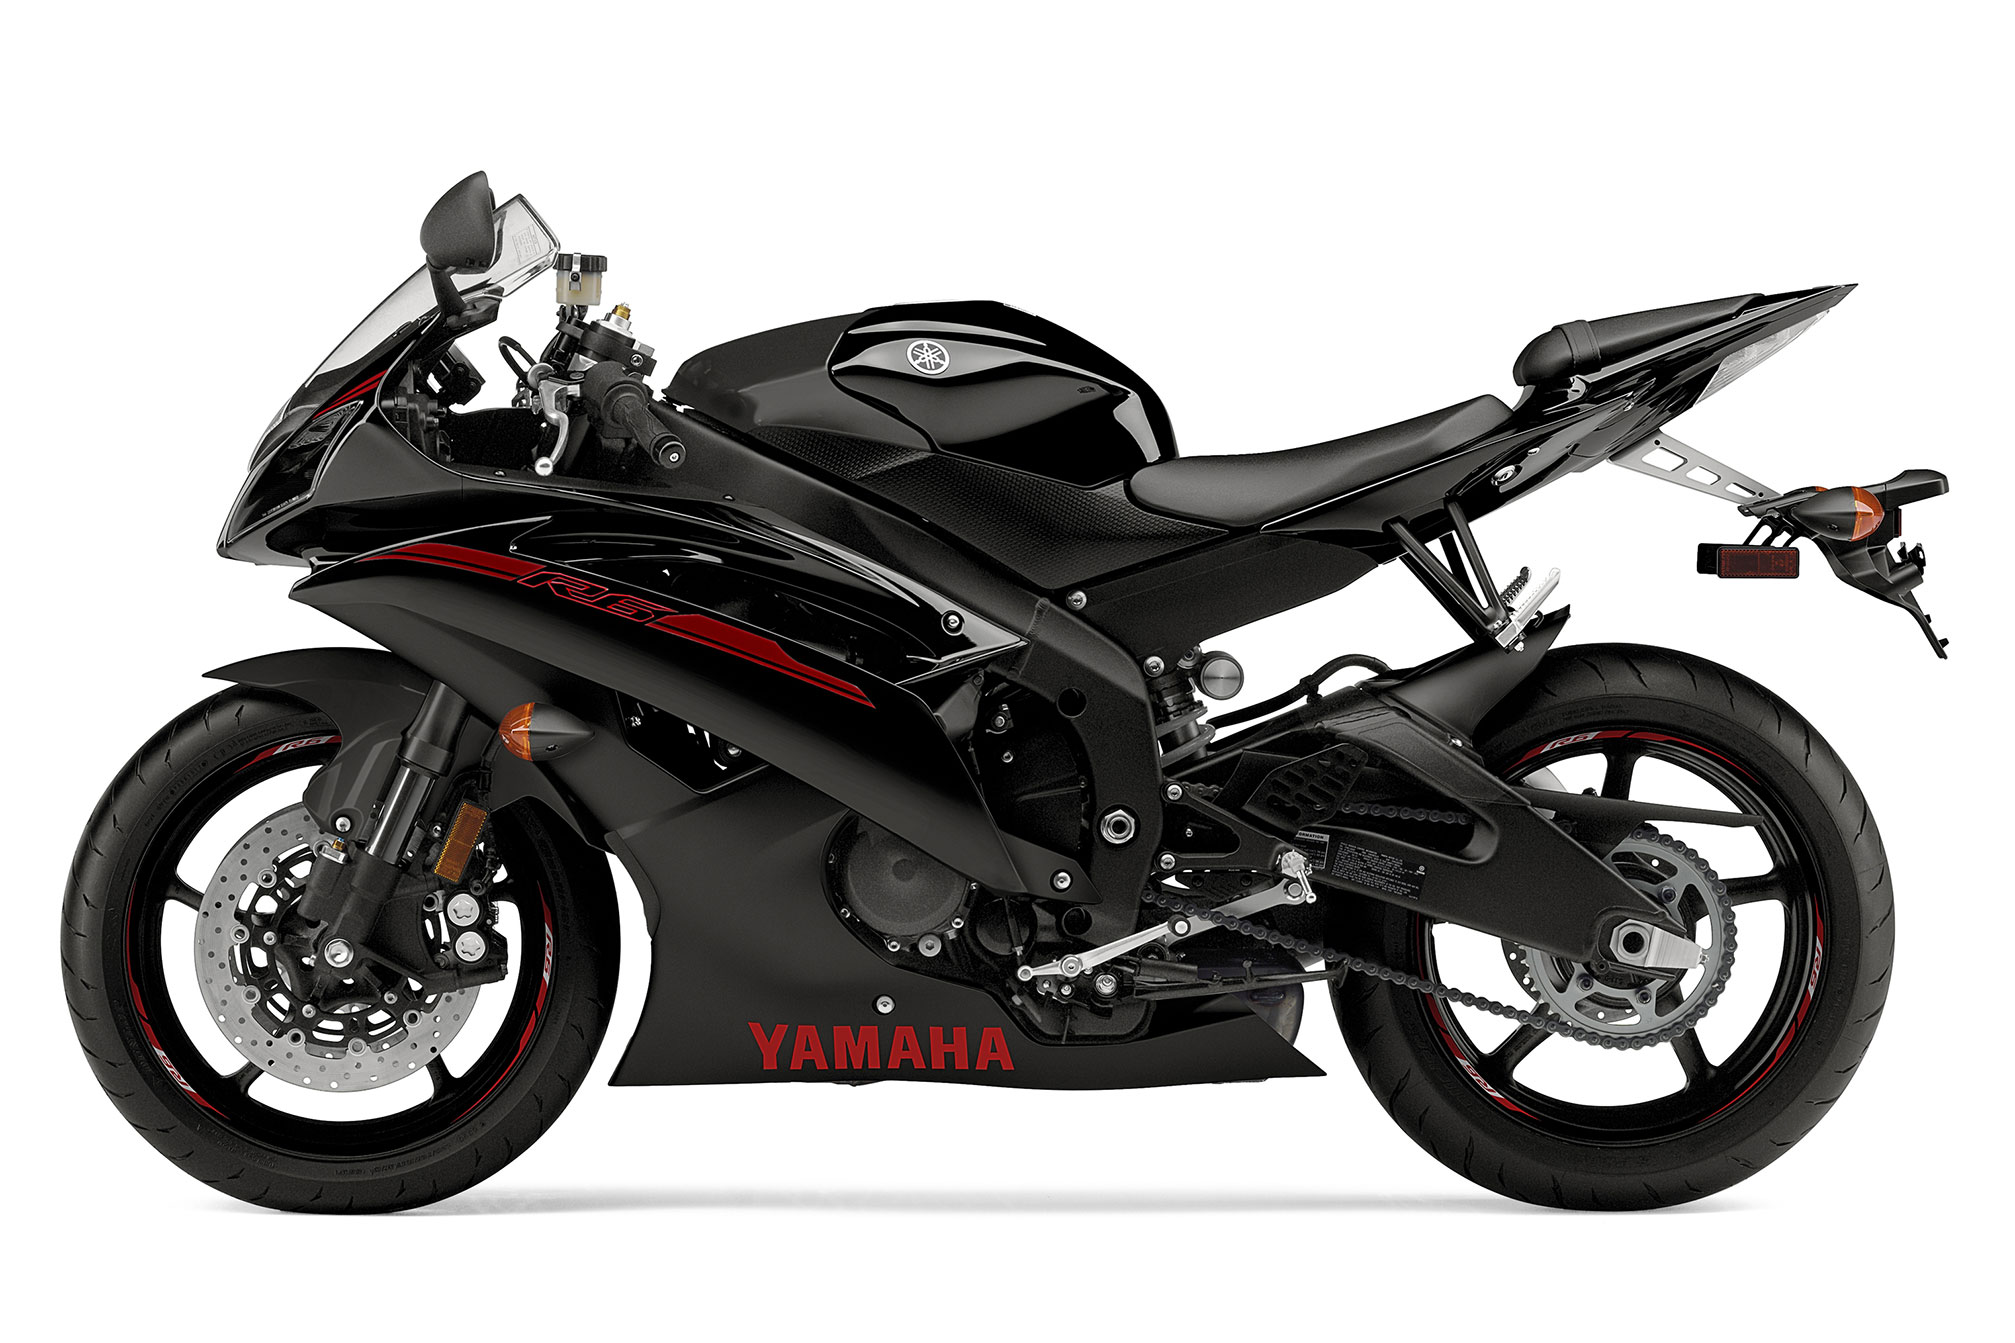 2009 yamaha yzf r6 pics specs and information for 2009 yamaha r6